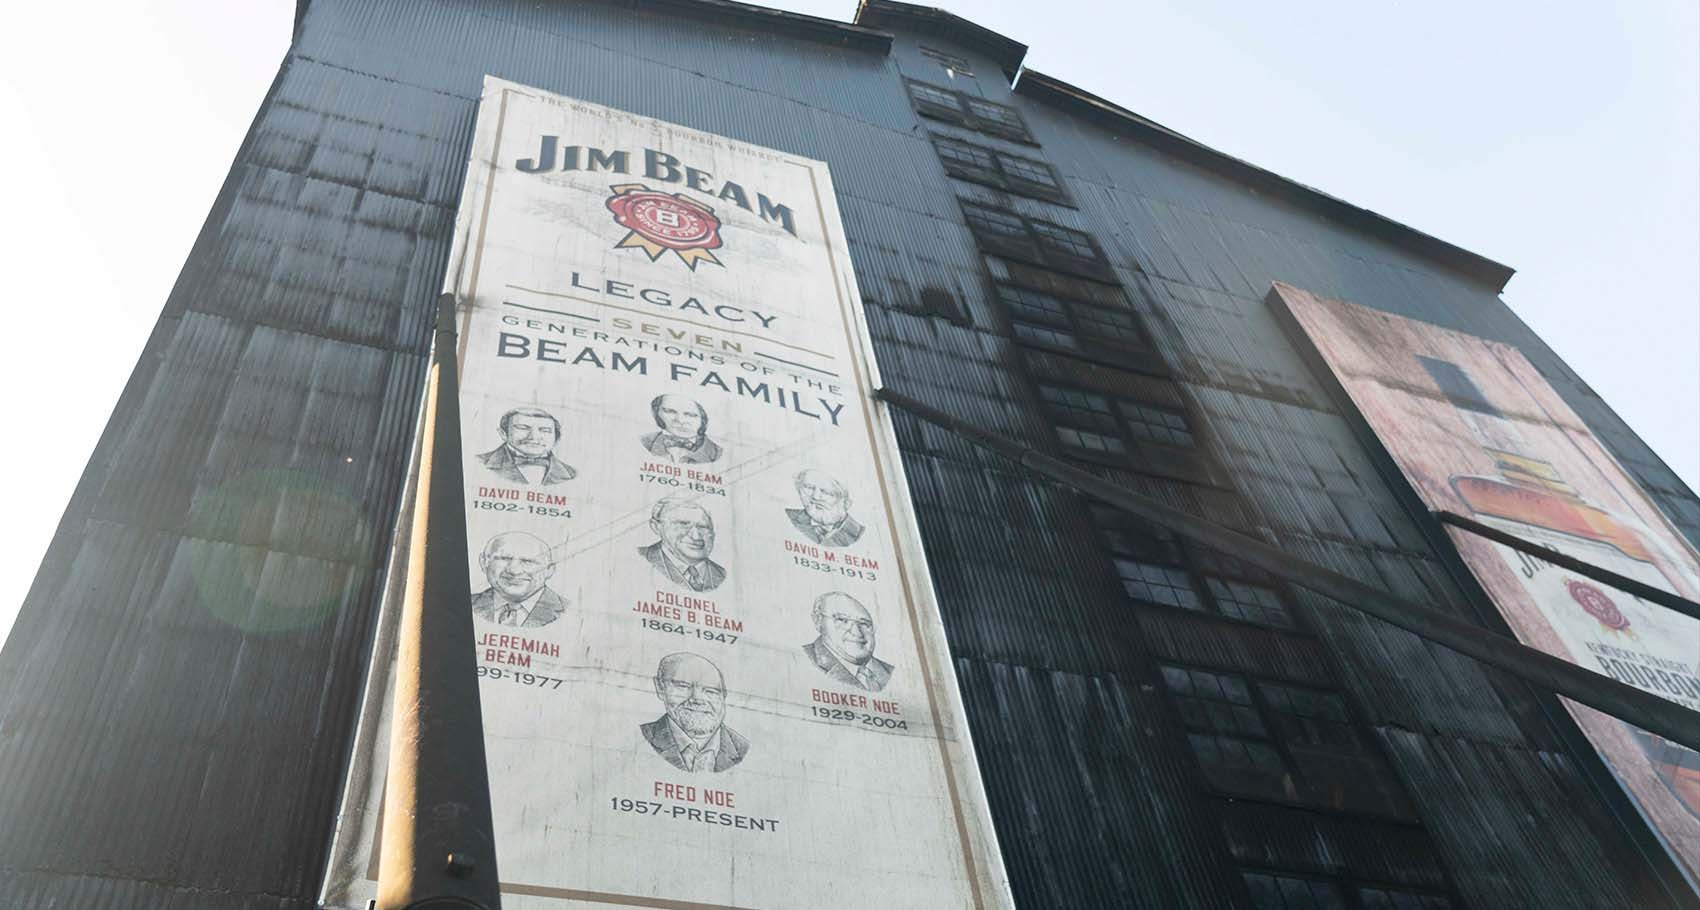 Jim Beam bourbon legacy is built on family and generational traditions